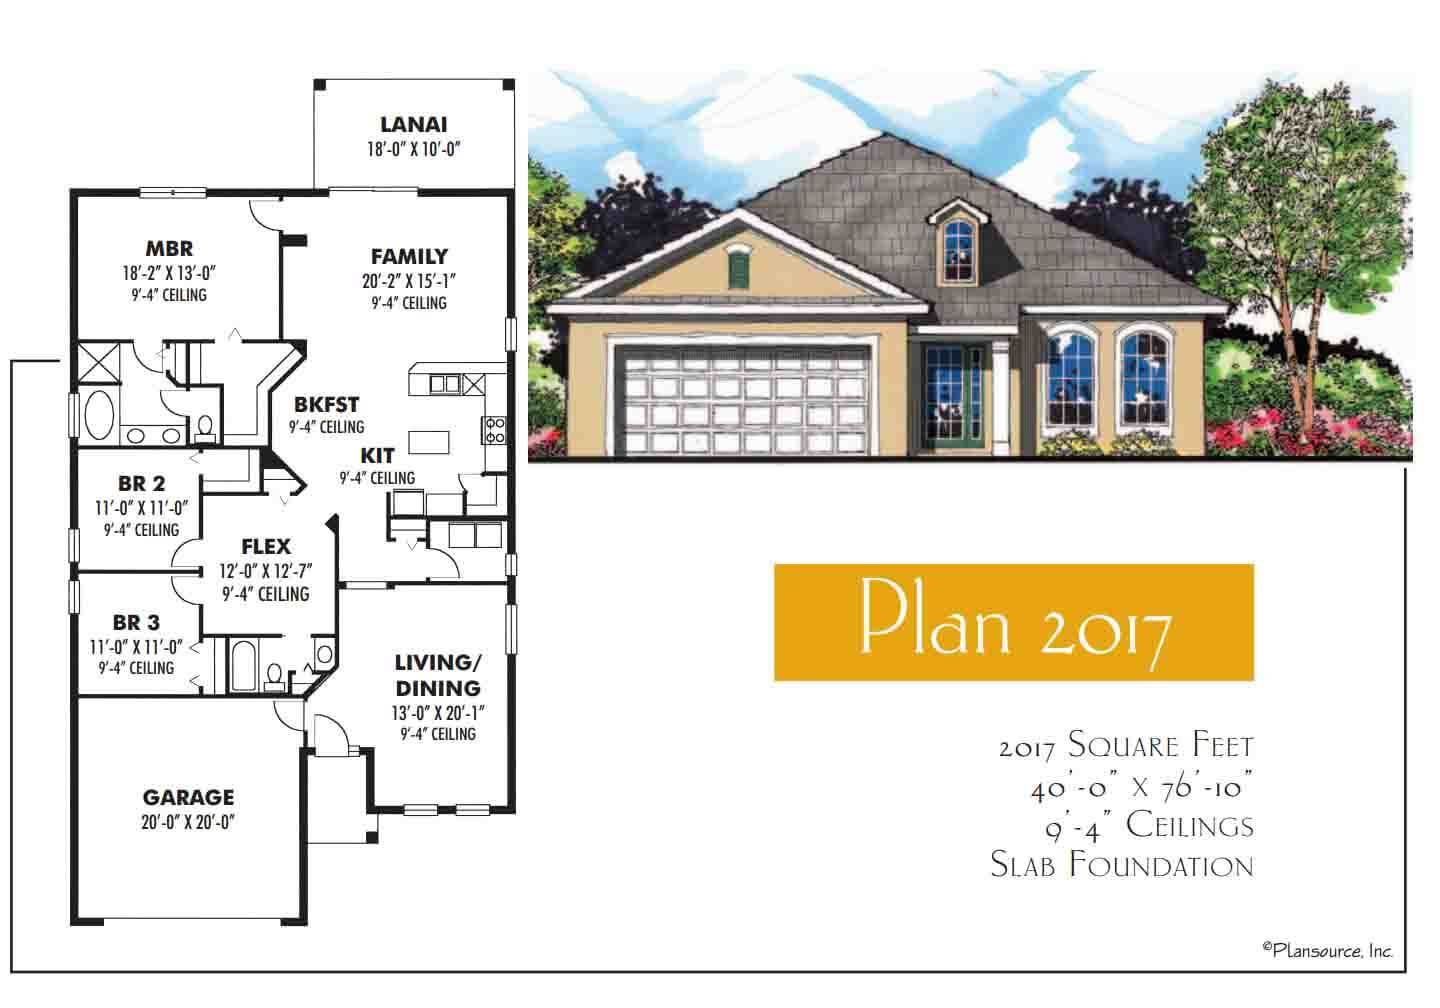 Floor Plans,2,001 SQ FT TO 2,500 SQ FT,1045